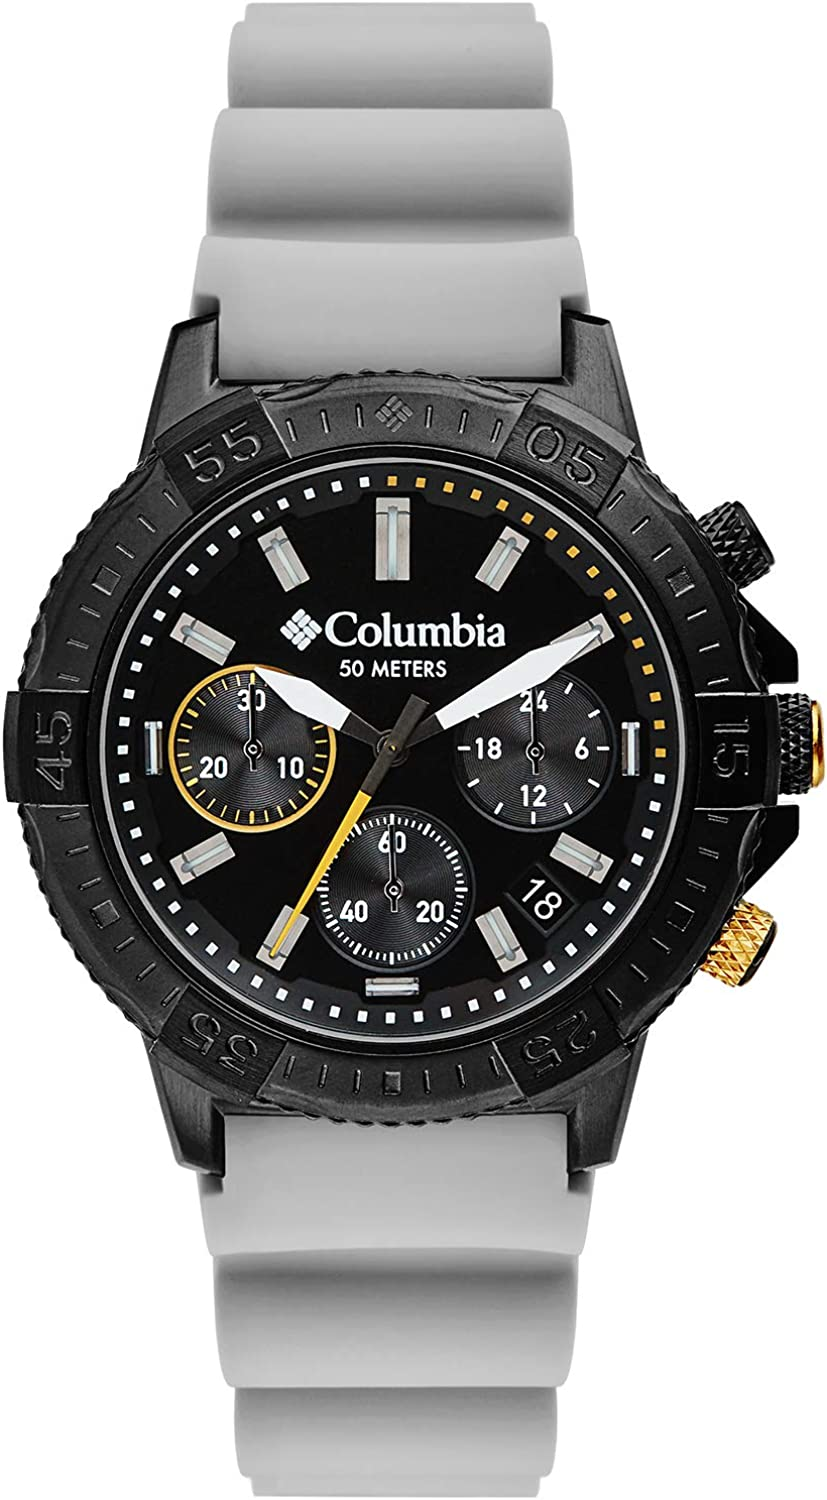 Columbia Peak Patrol Stainless Steel Quartz Sport Watch with Silicone Strap, Gray, 13 Model CSC03-005